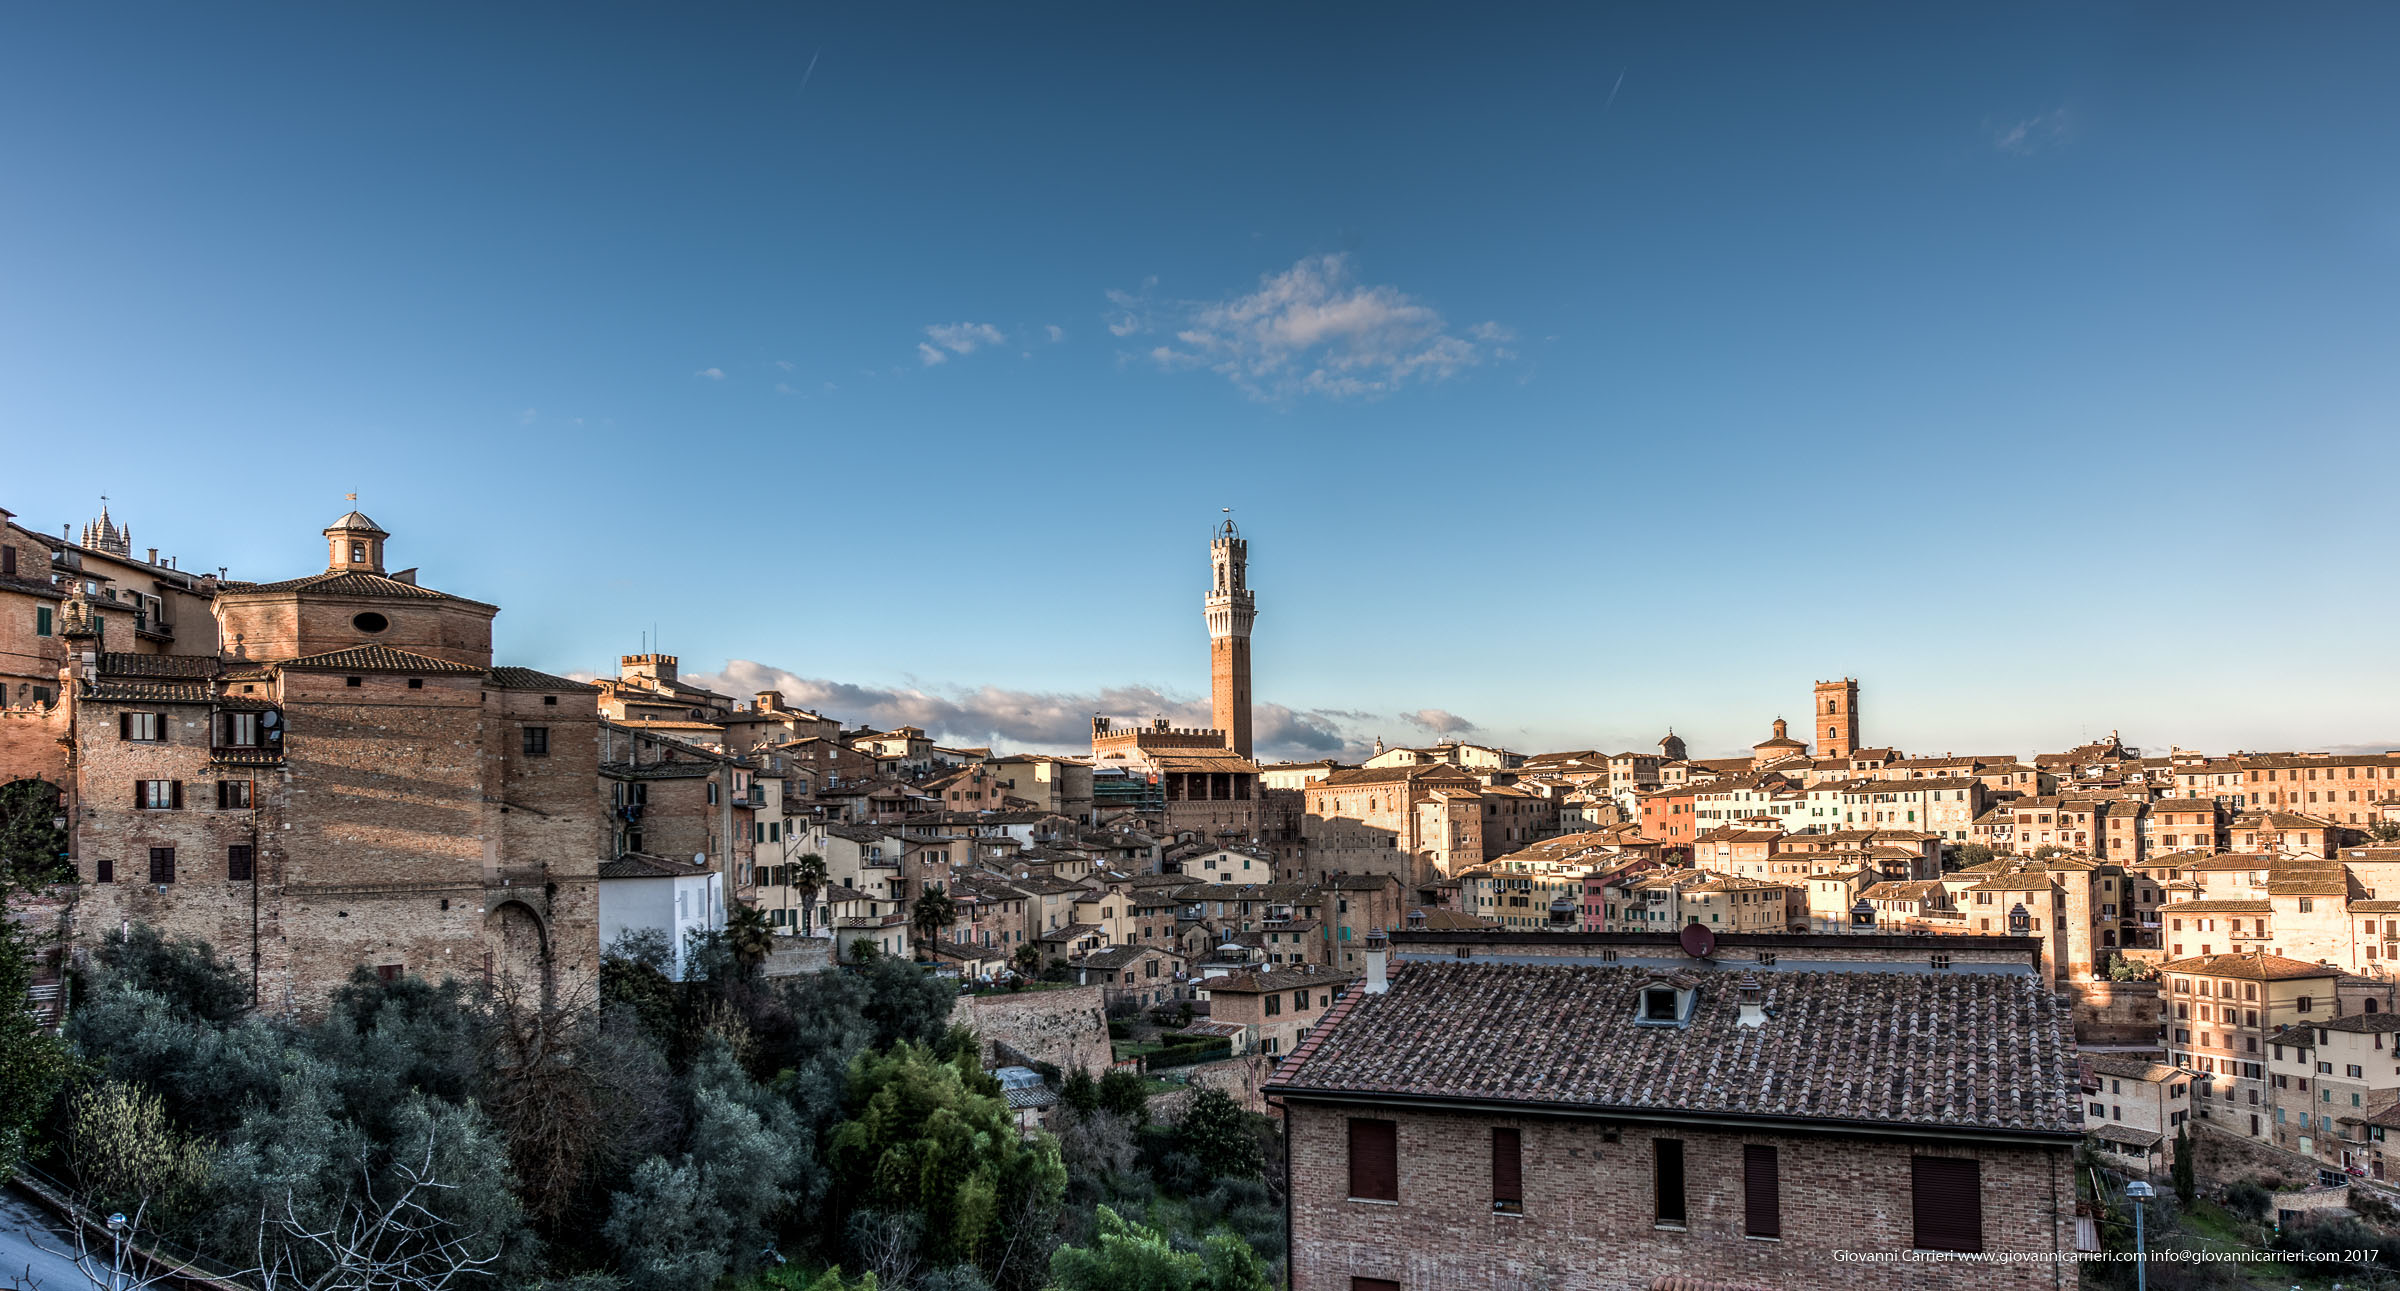 Photographs of Siena